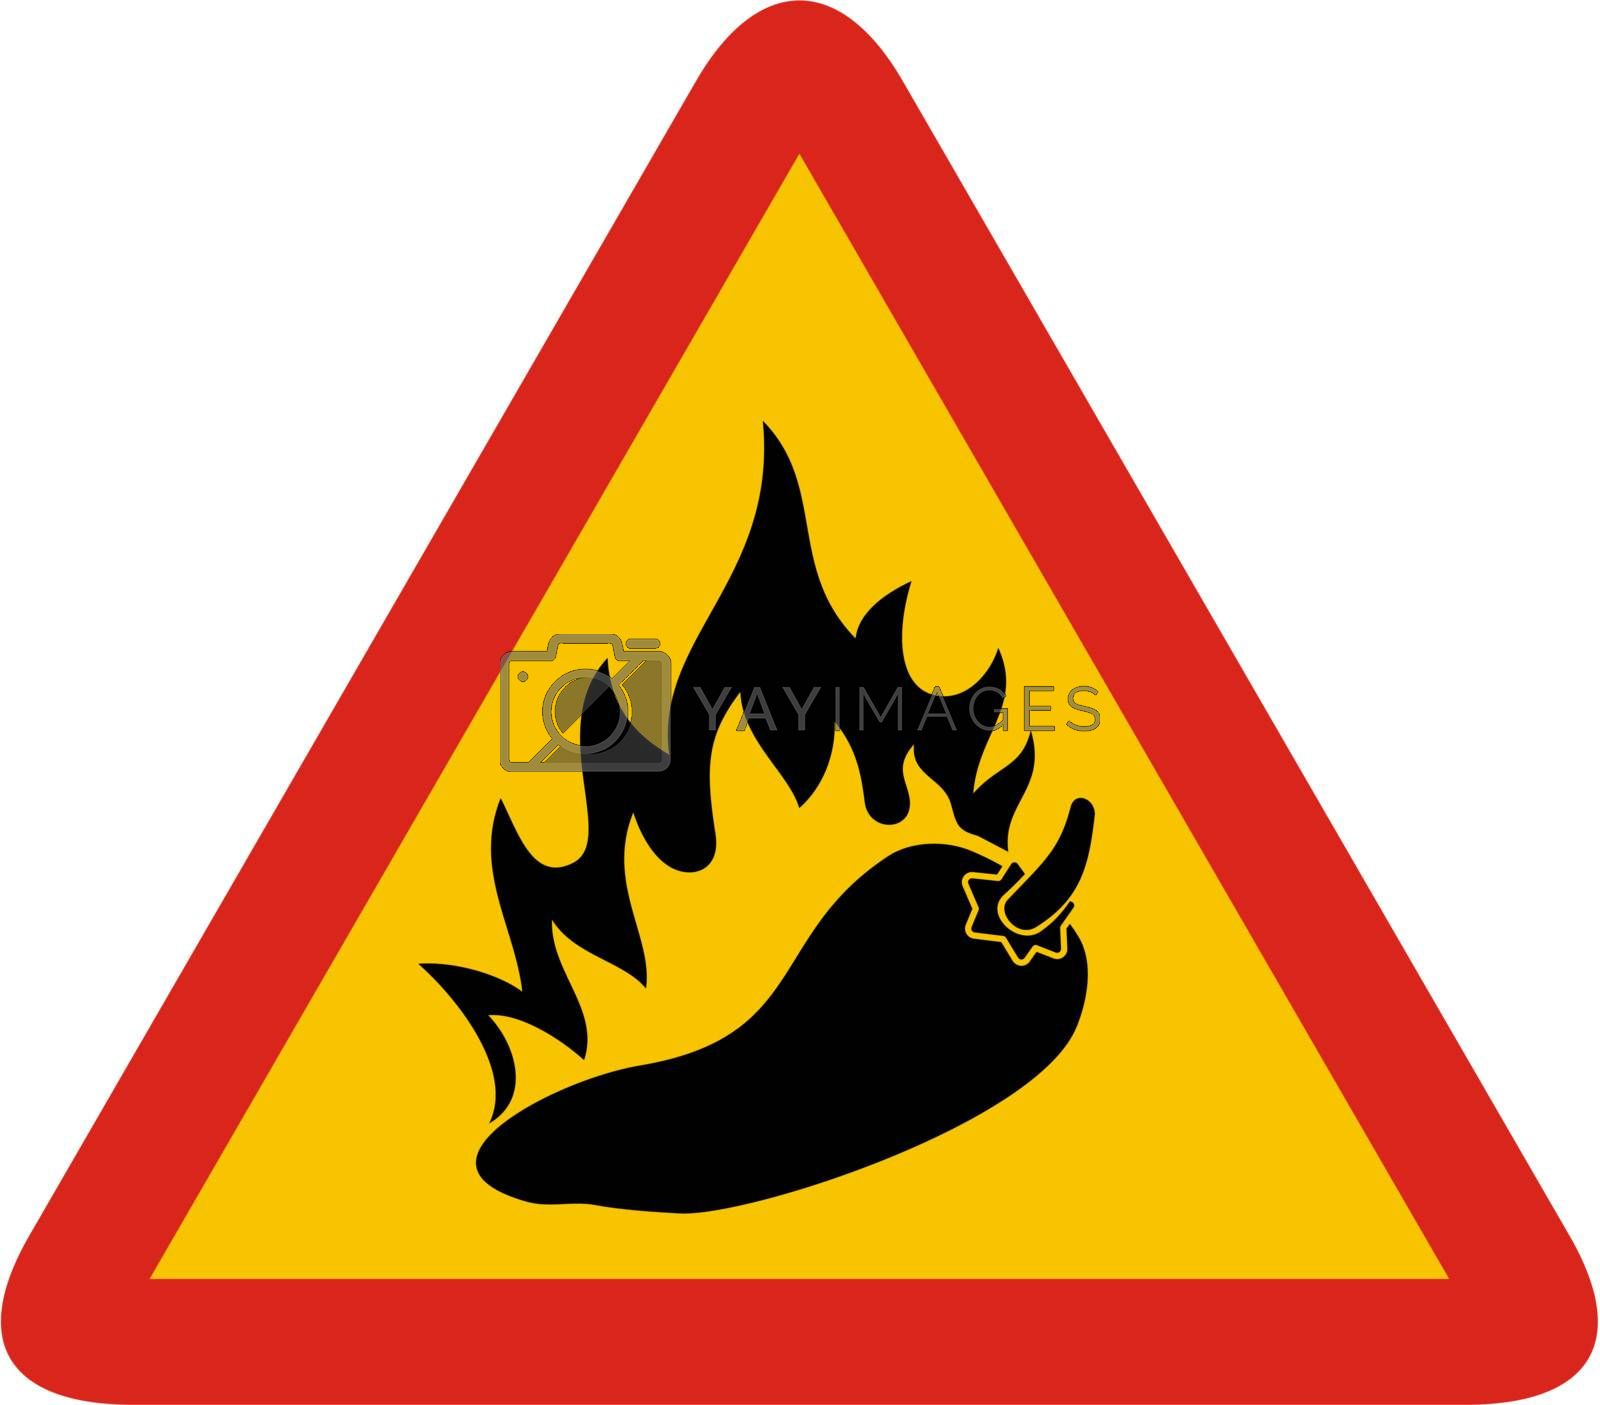 Hot pepper sign by sifis